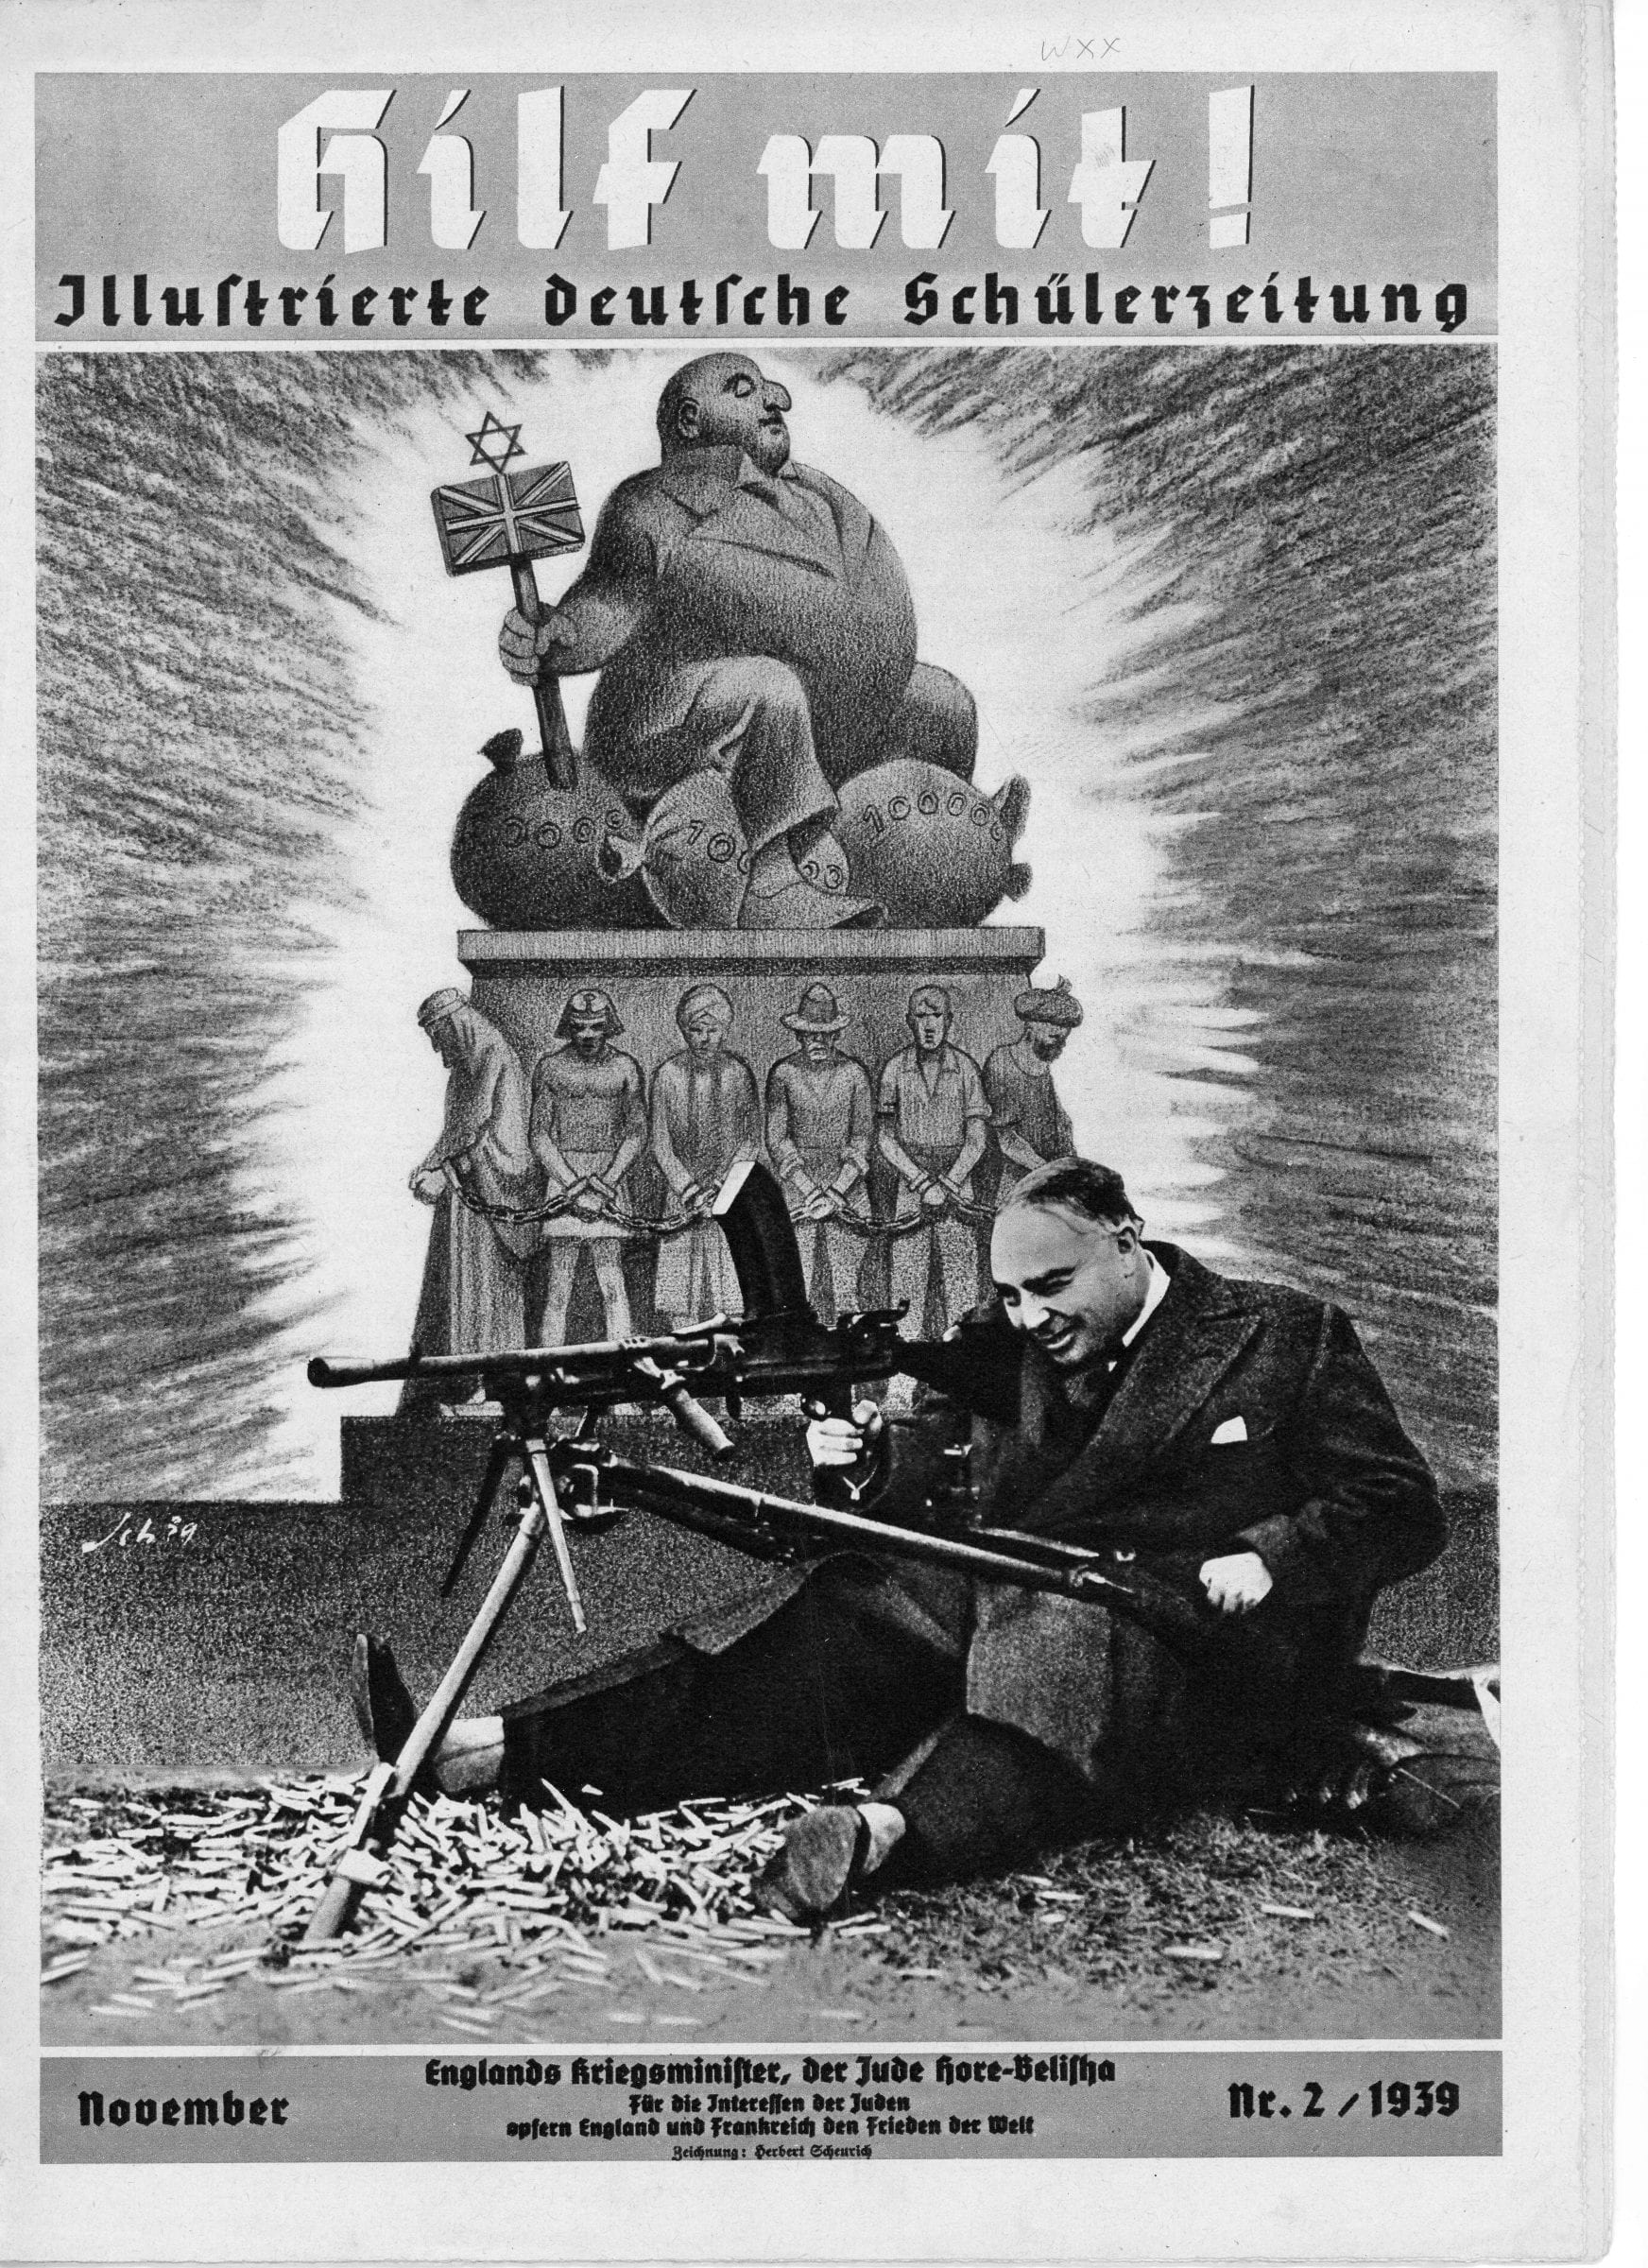 1939 German magazine showing English Jew sitting on bags of money above poor chained people